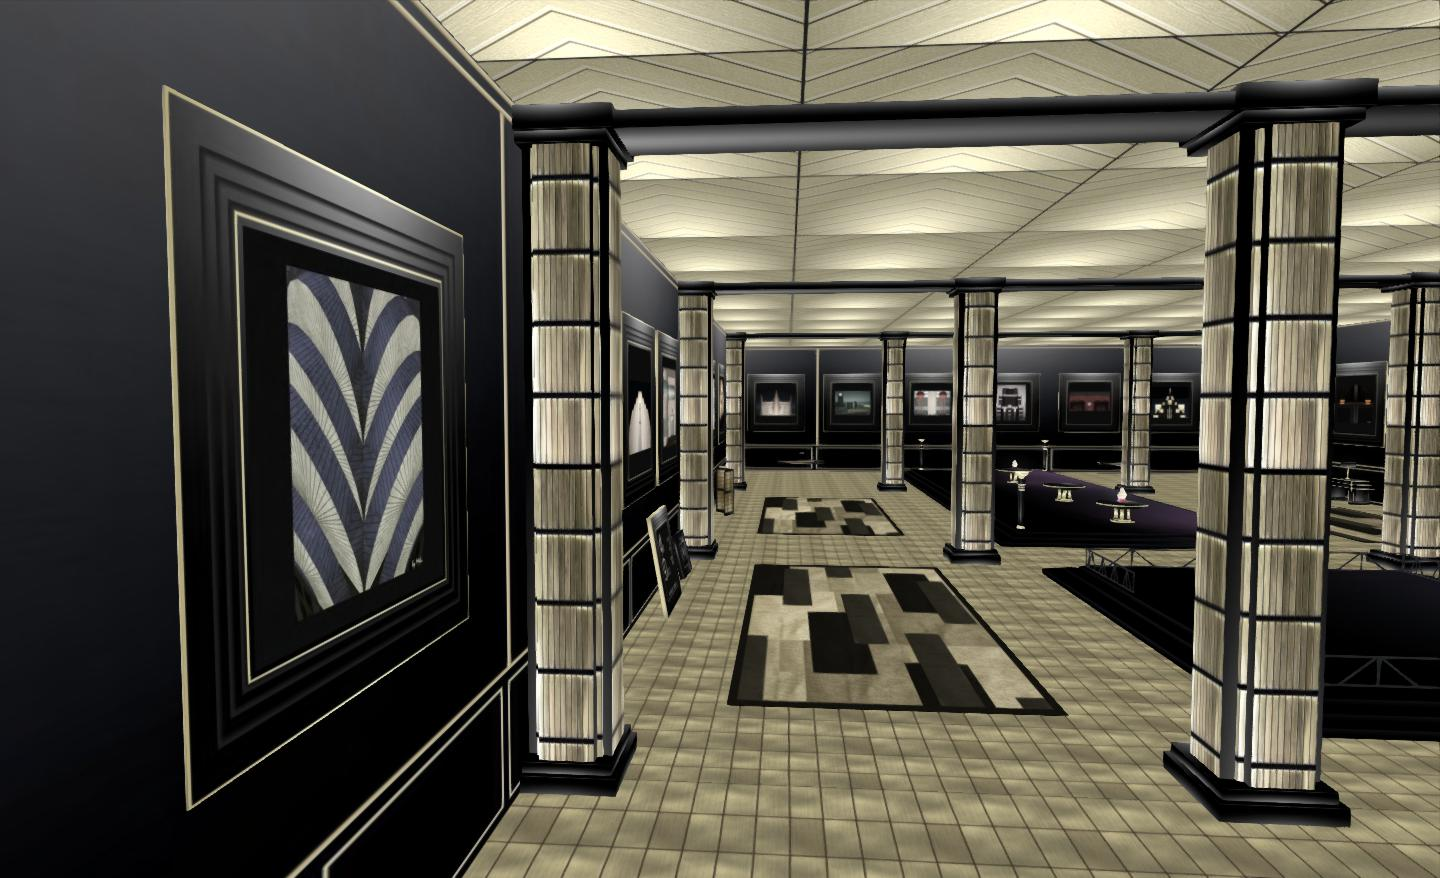 art deco sl style inara pey living in a modem world. Black Bedroom Furniture Sets. Home Design Ideas